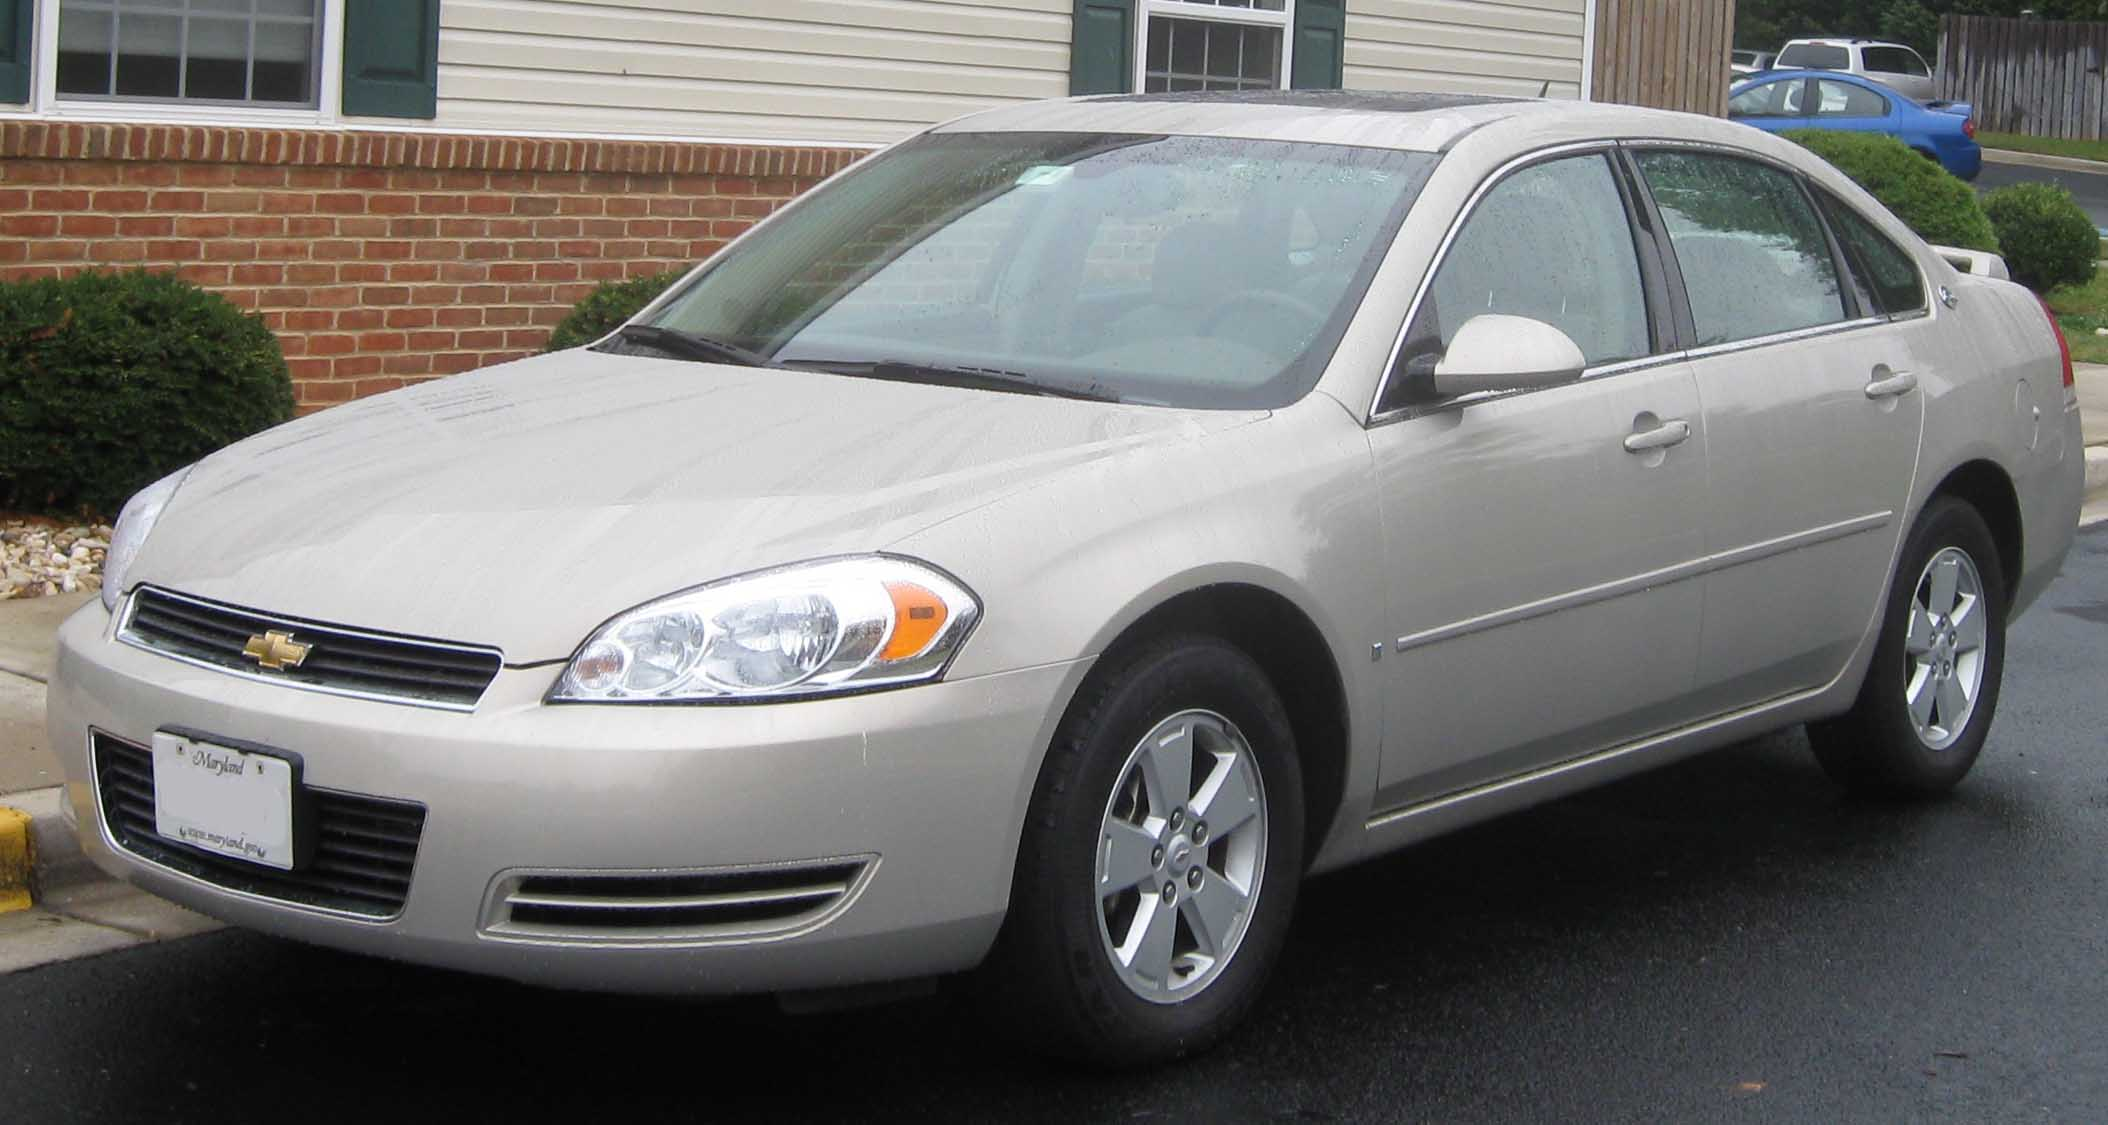 2008 chevrolet impala pictures information and specs. Black Bedroom Furniture Sets. Home Design Ideas